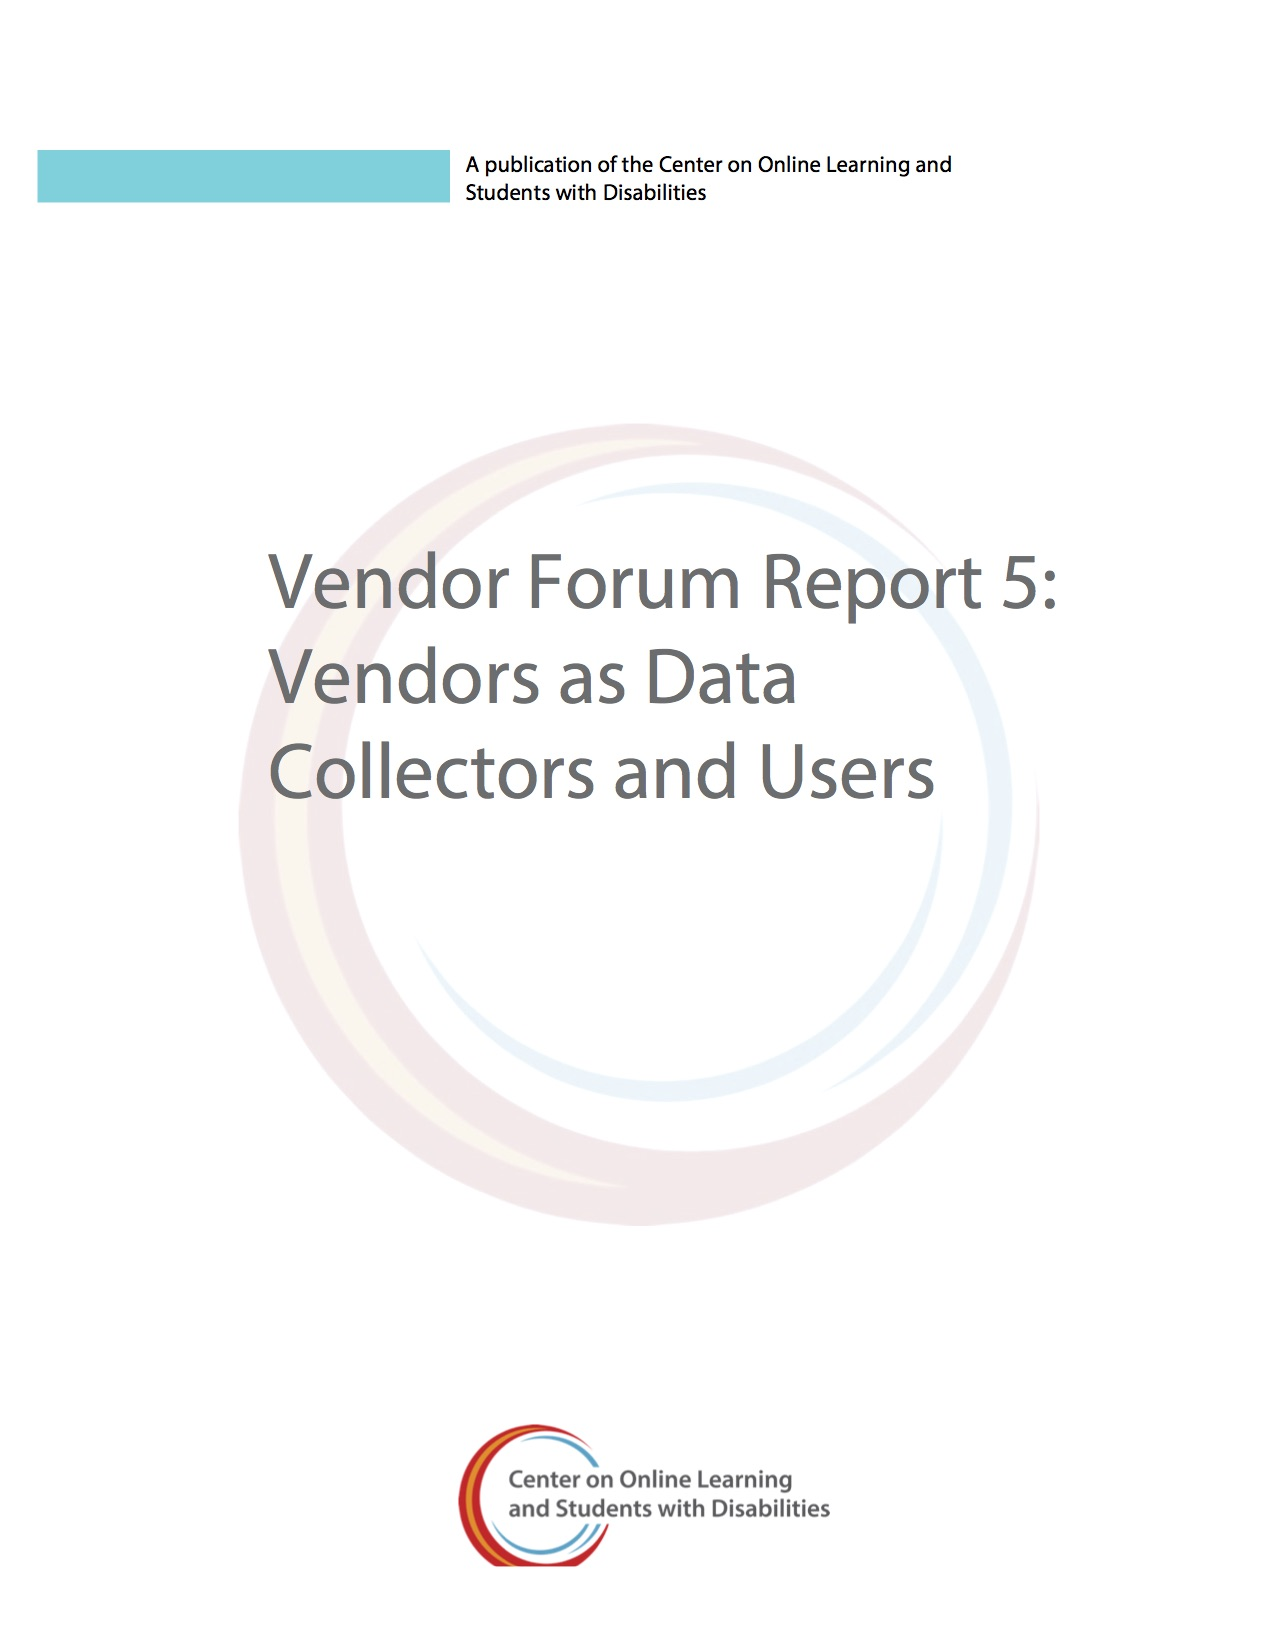 Vendor Forum Report 5: Vendors As Data Collectors And Users